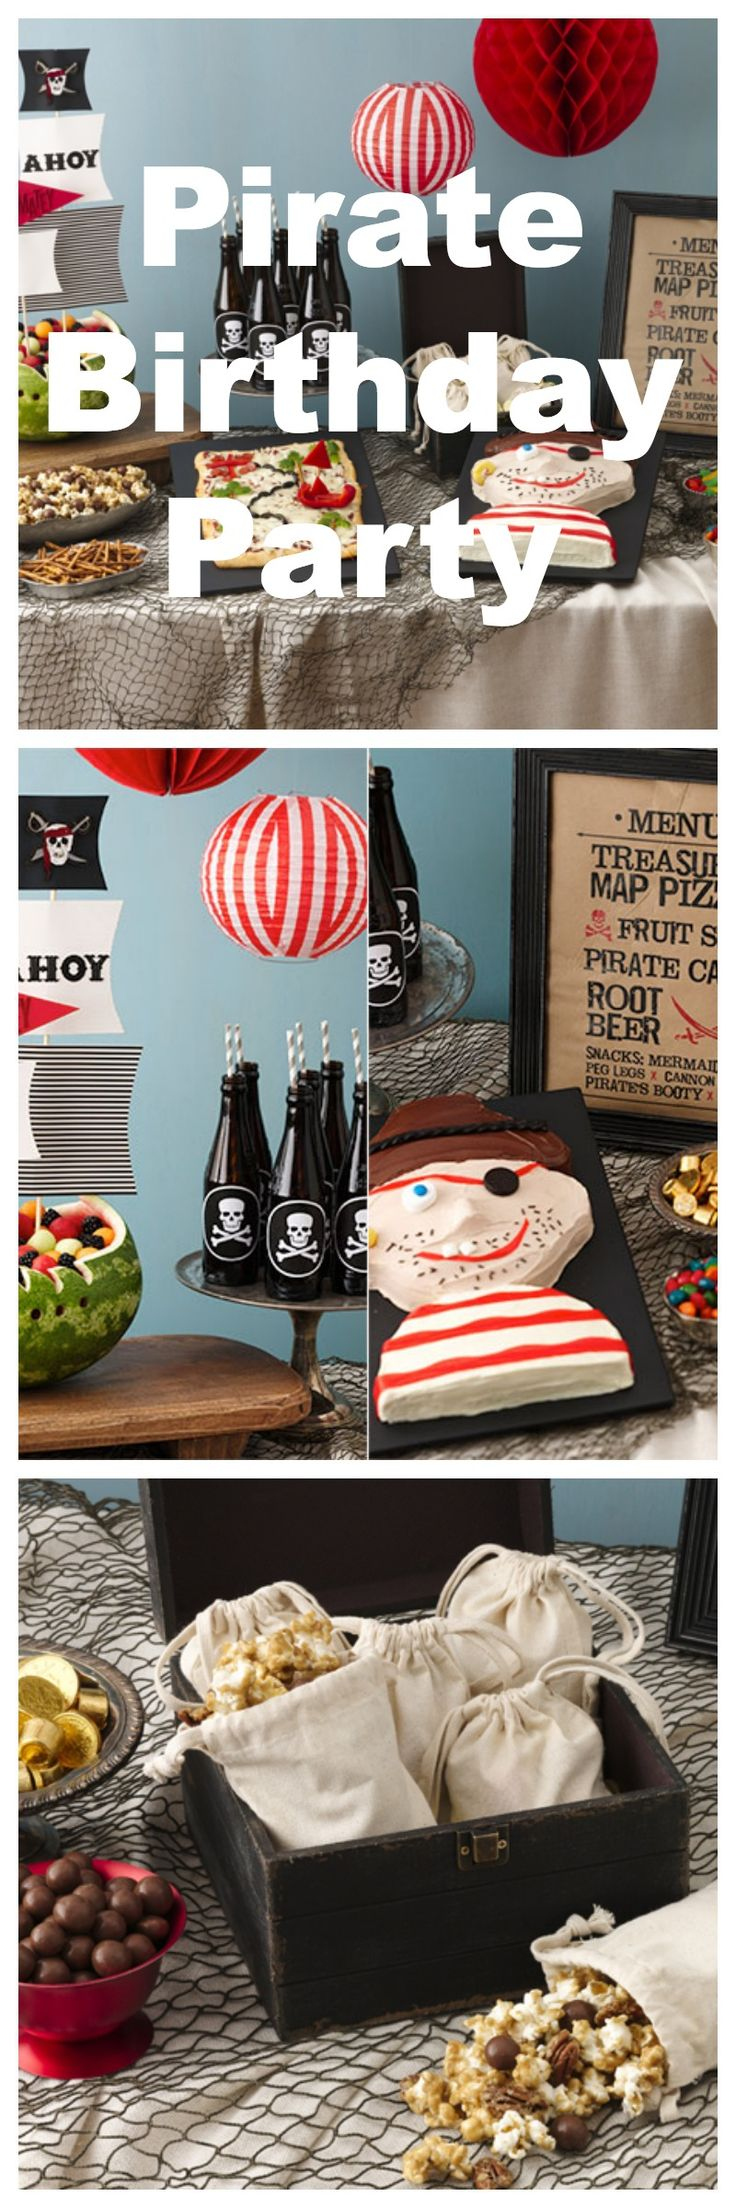 Full pirate birthday party plans!